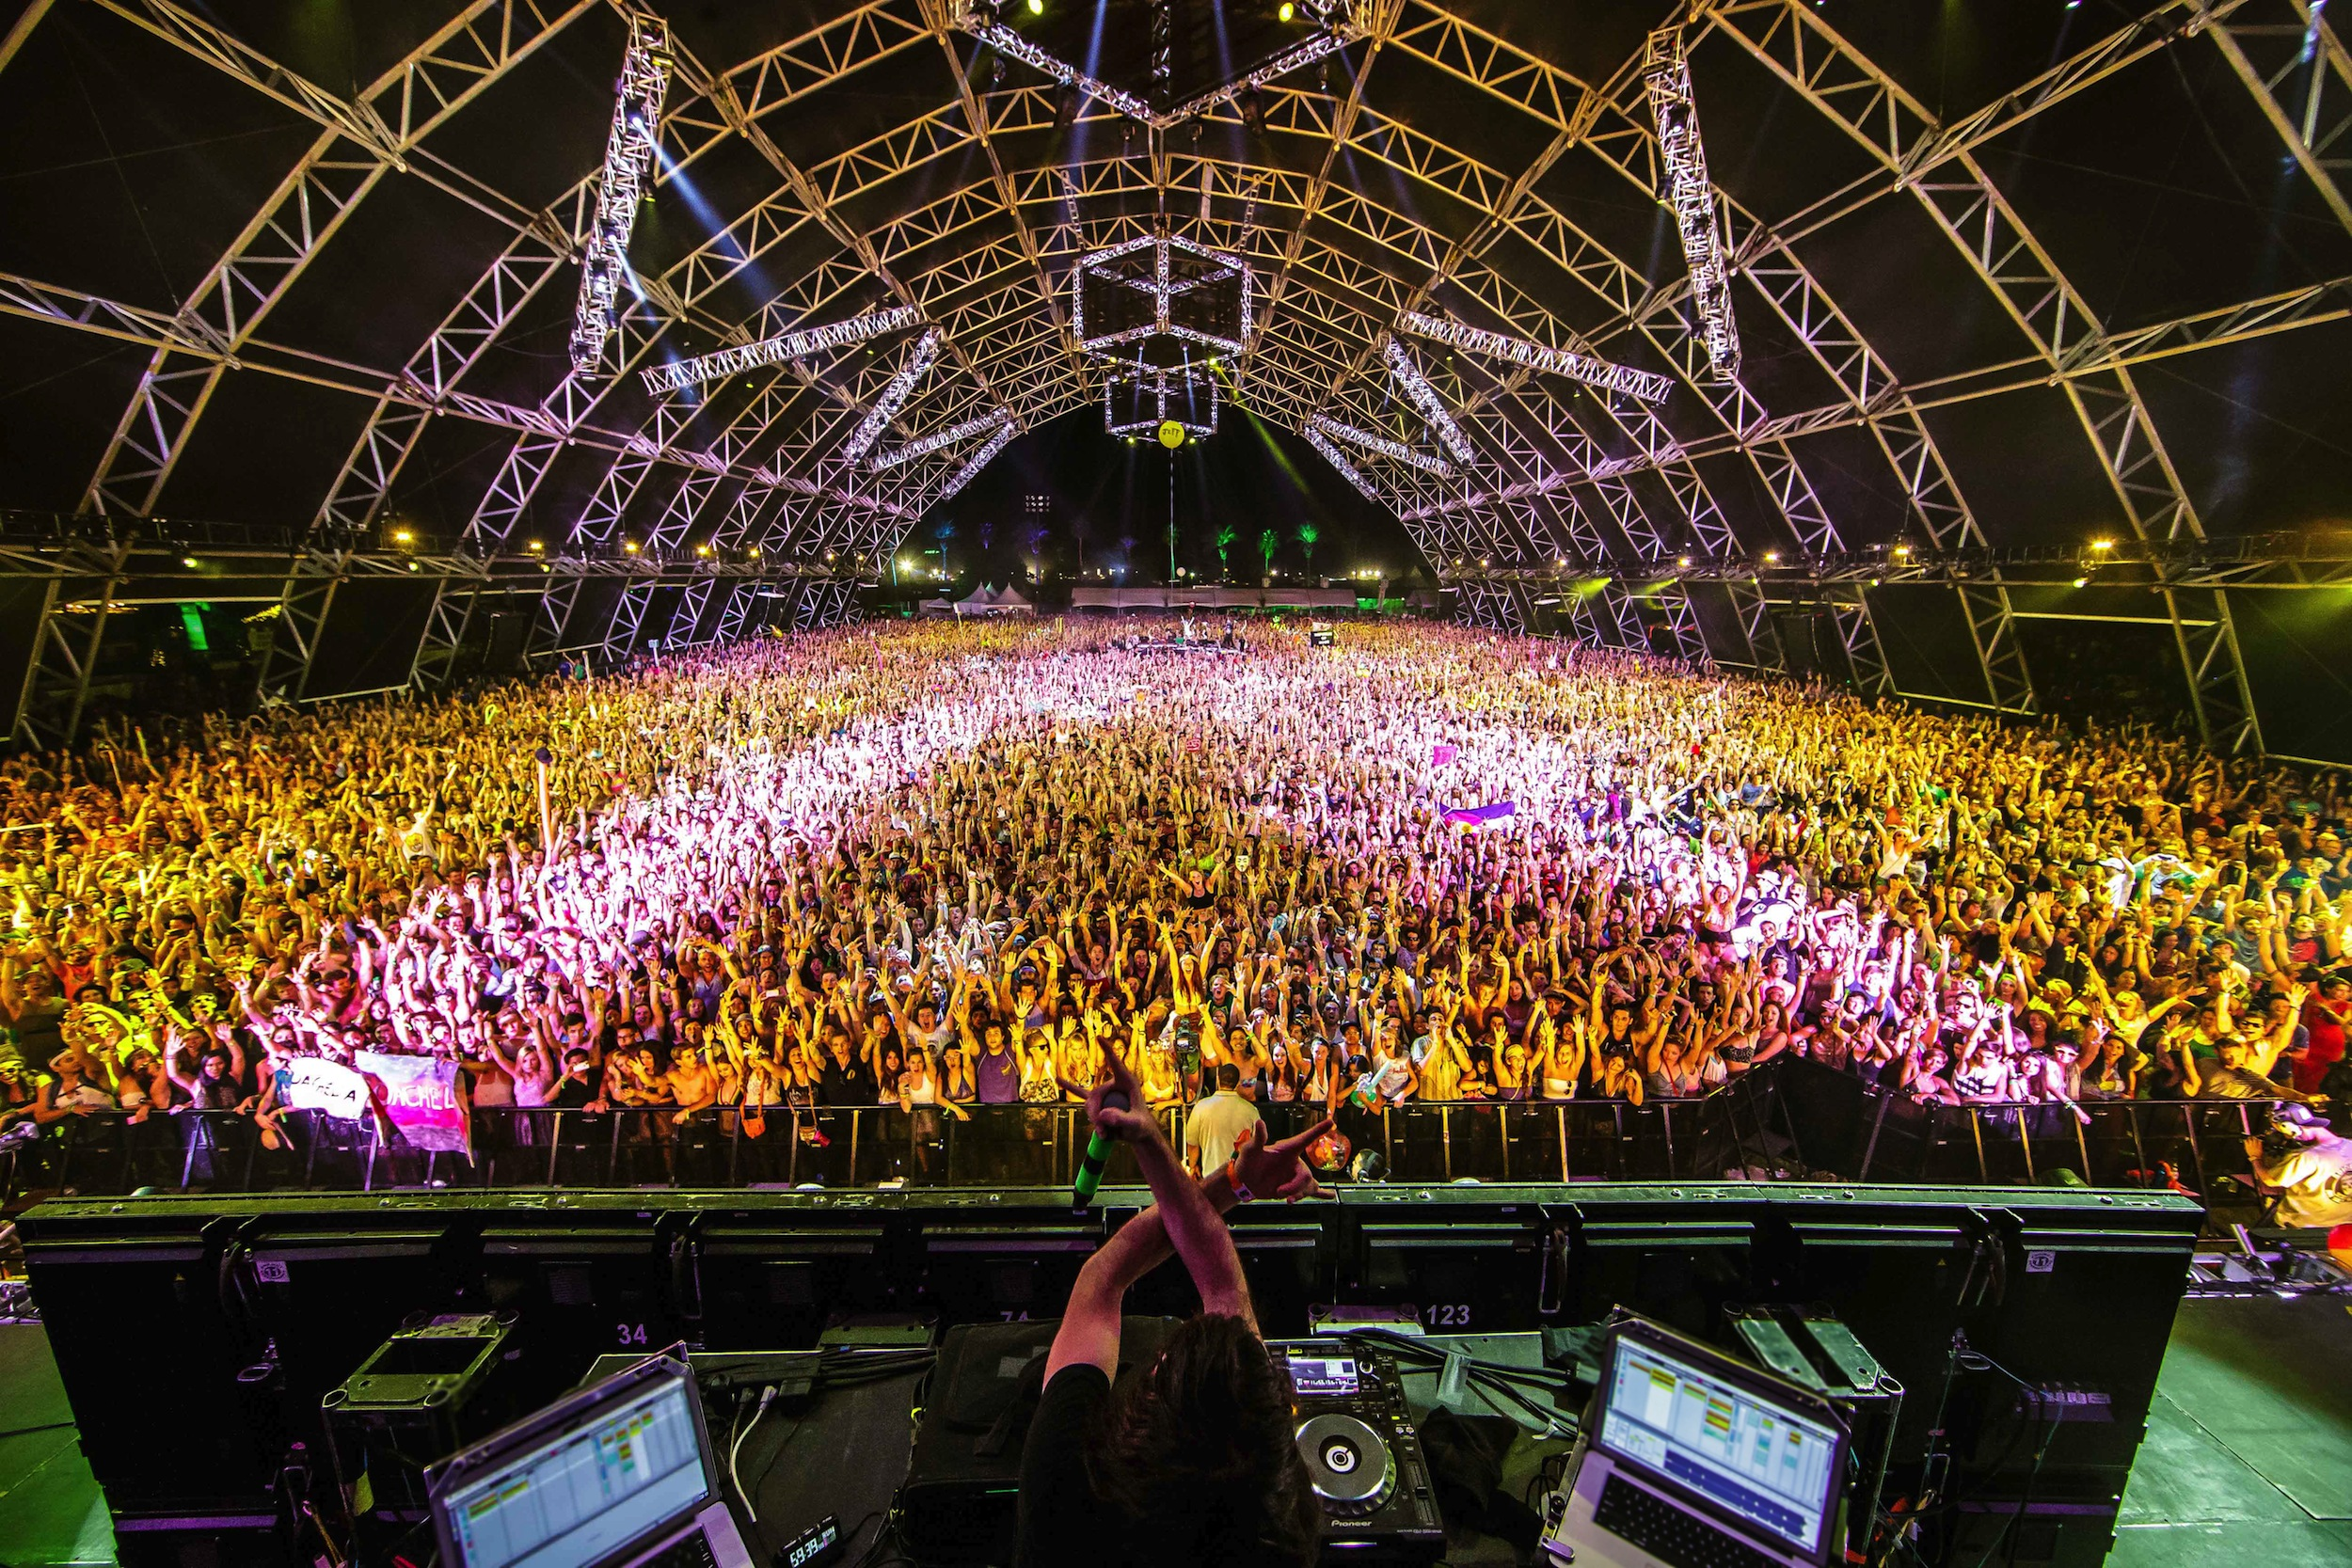 File:Bassnectar Live at Coachella Wknd 2.jpg - Wikimedia Commons